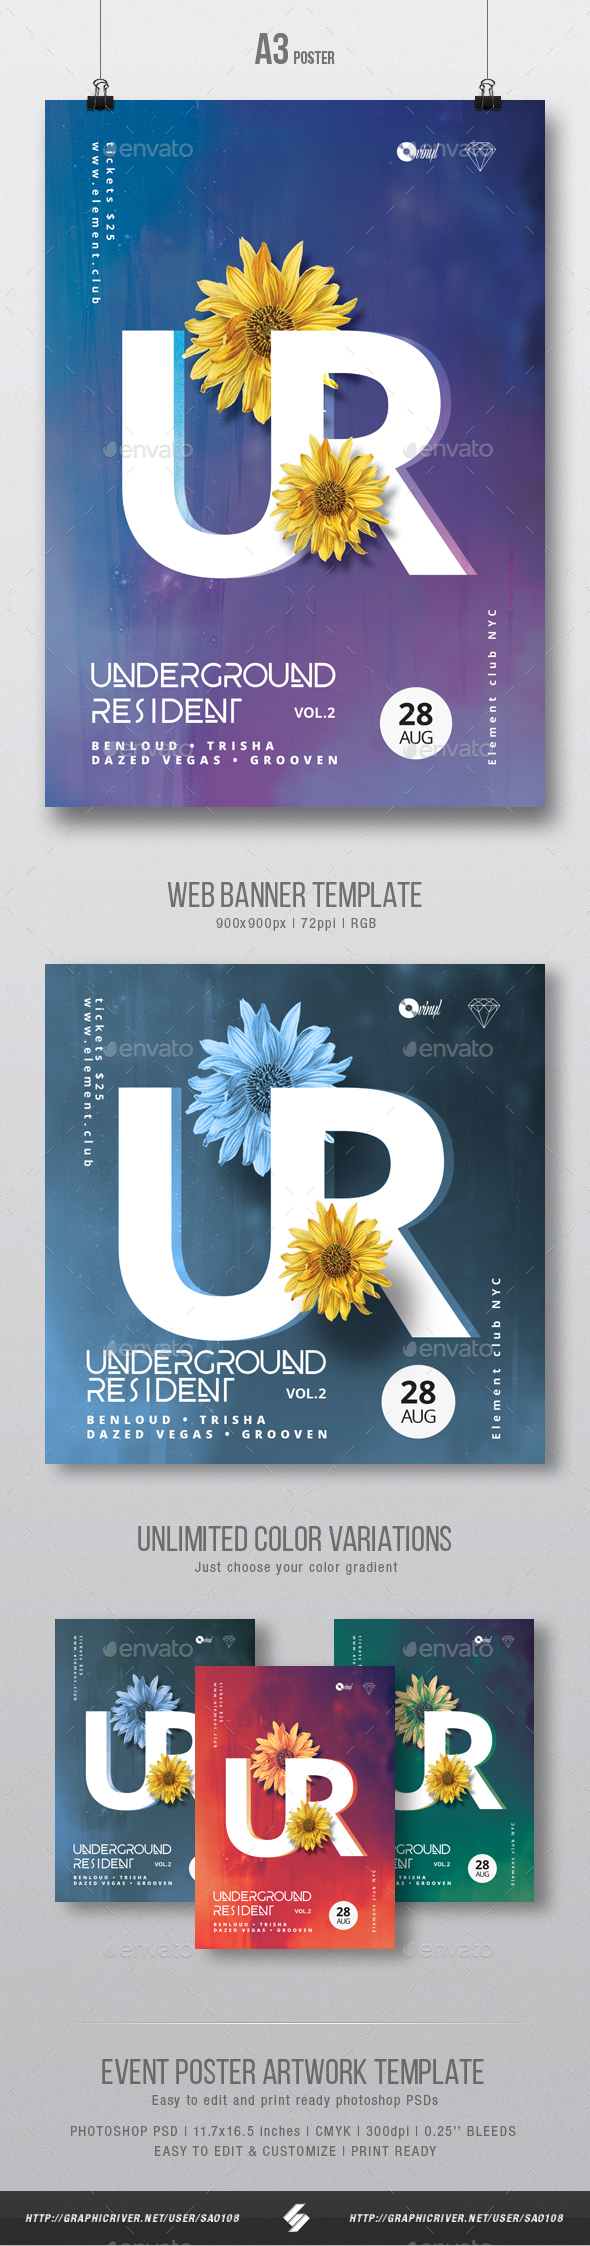 Underground Resident 2 - Progressive Party Flyer / Poster Artwork Template A3 - Clubs & Parties Events